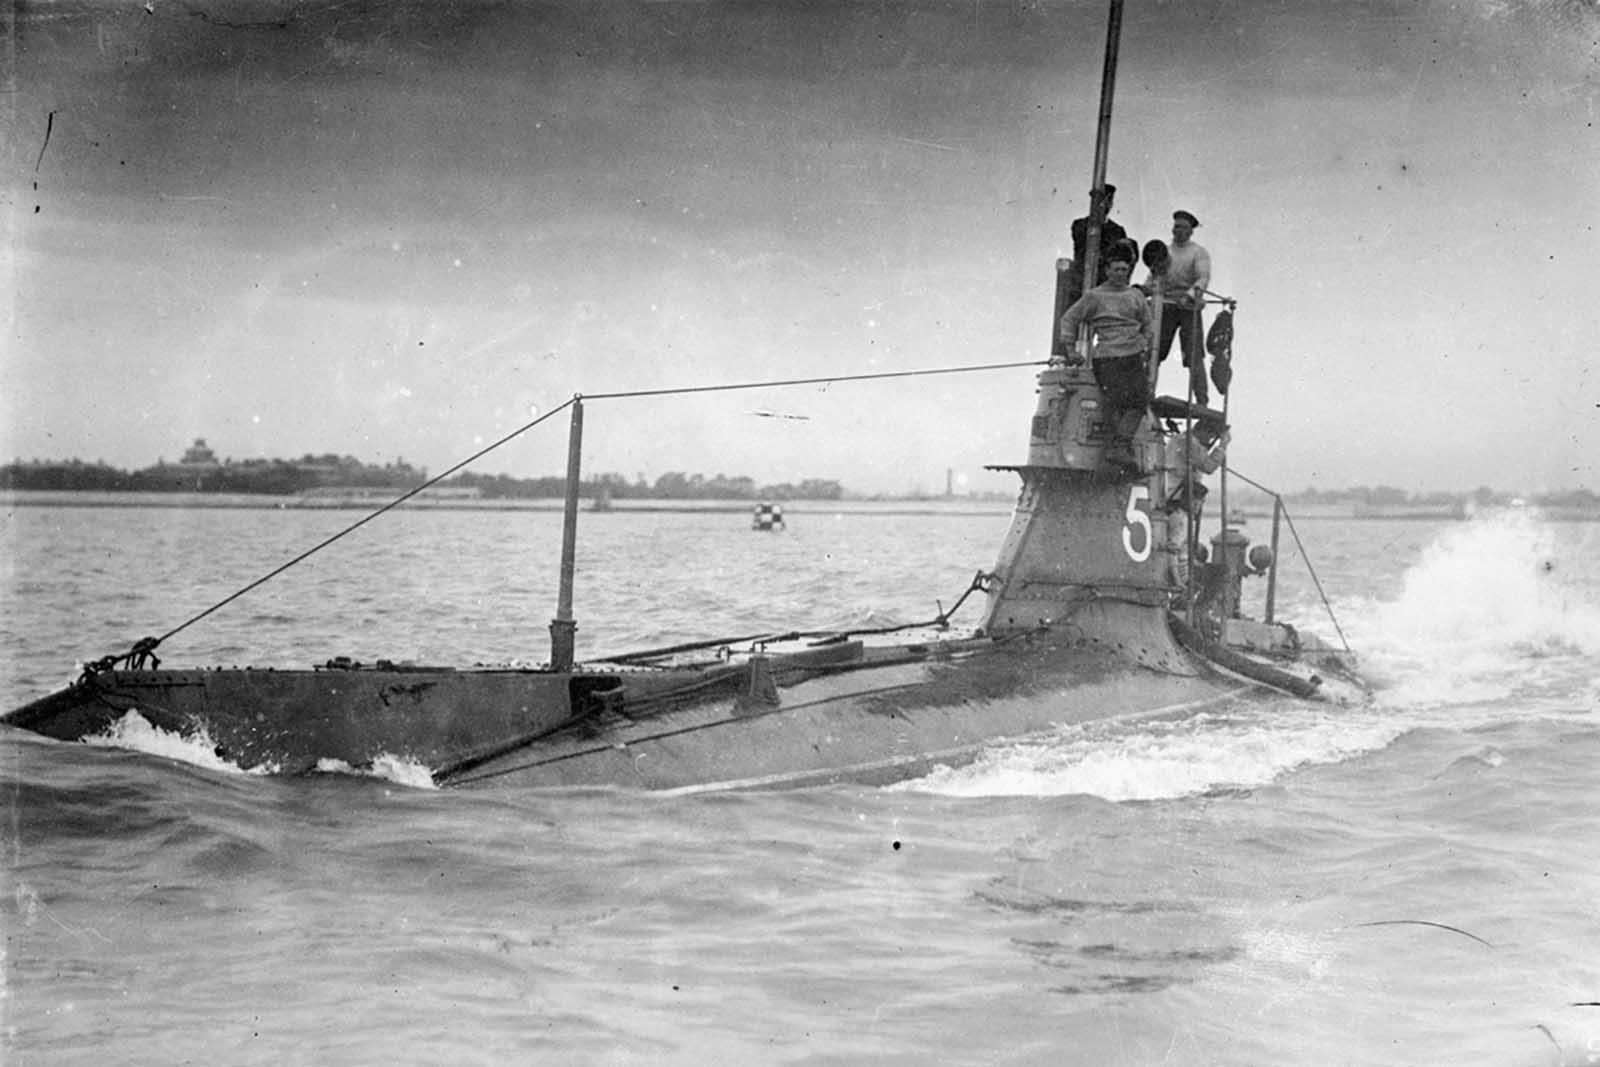 British submarine HMS A5. The A5 was part of the first British A-class of submarines, used in World War I for harbor defense. The A5, however, suffered an explosion only days after its commissioning in 1905, and did not participate in the war.